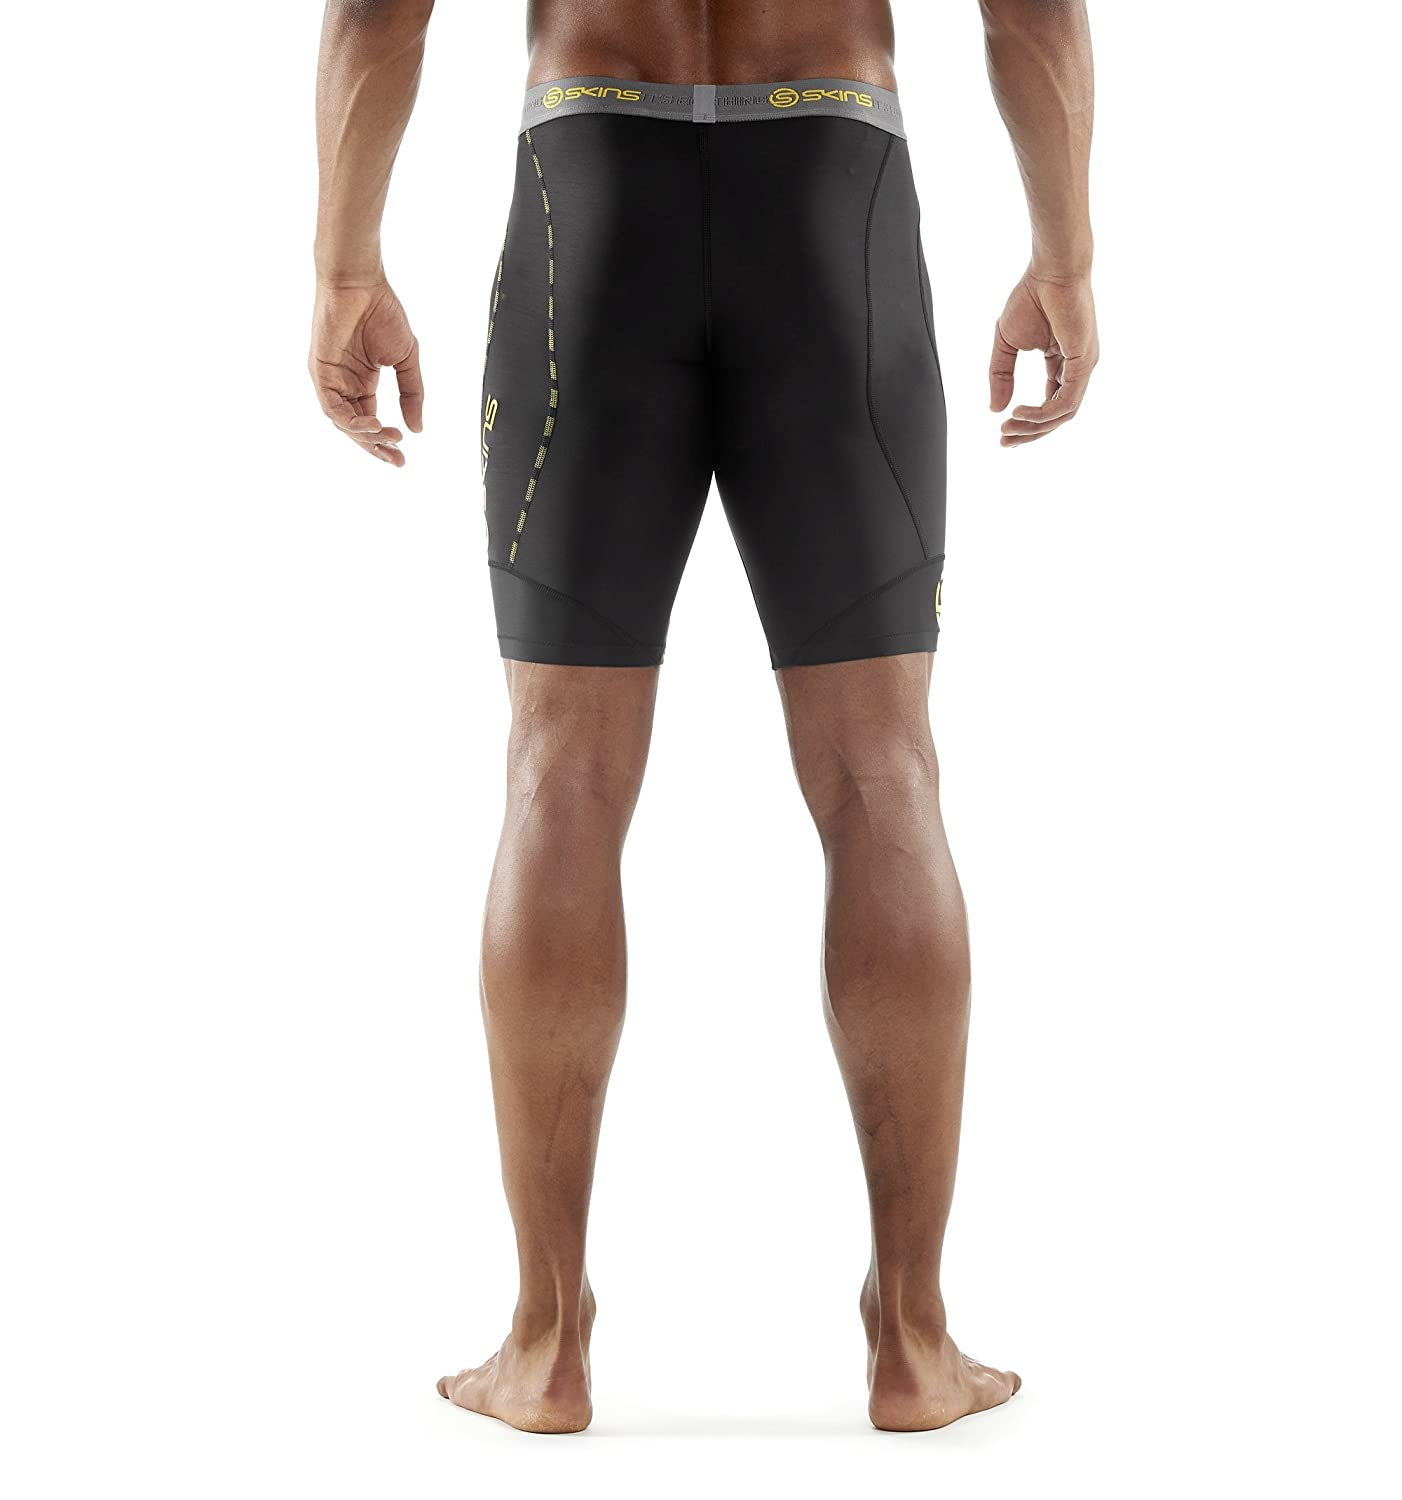 777377afea46f Amazon.com : SKINS Mens DNAmic Men's Compression Half Tights/Shorts :  Clothing